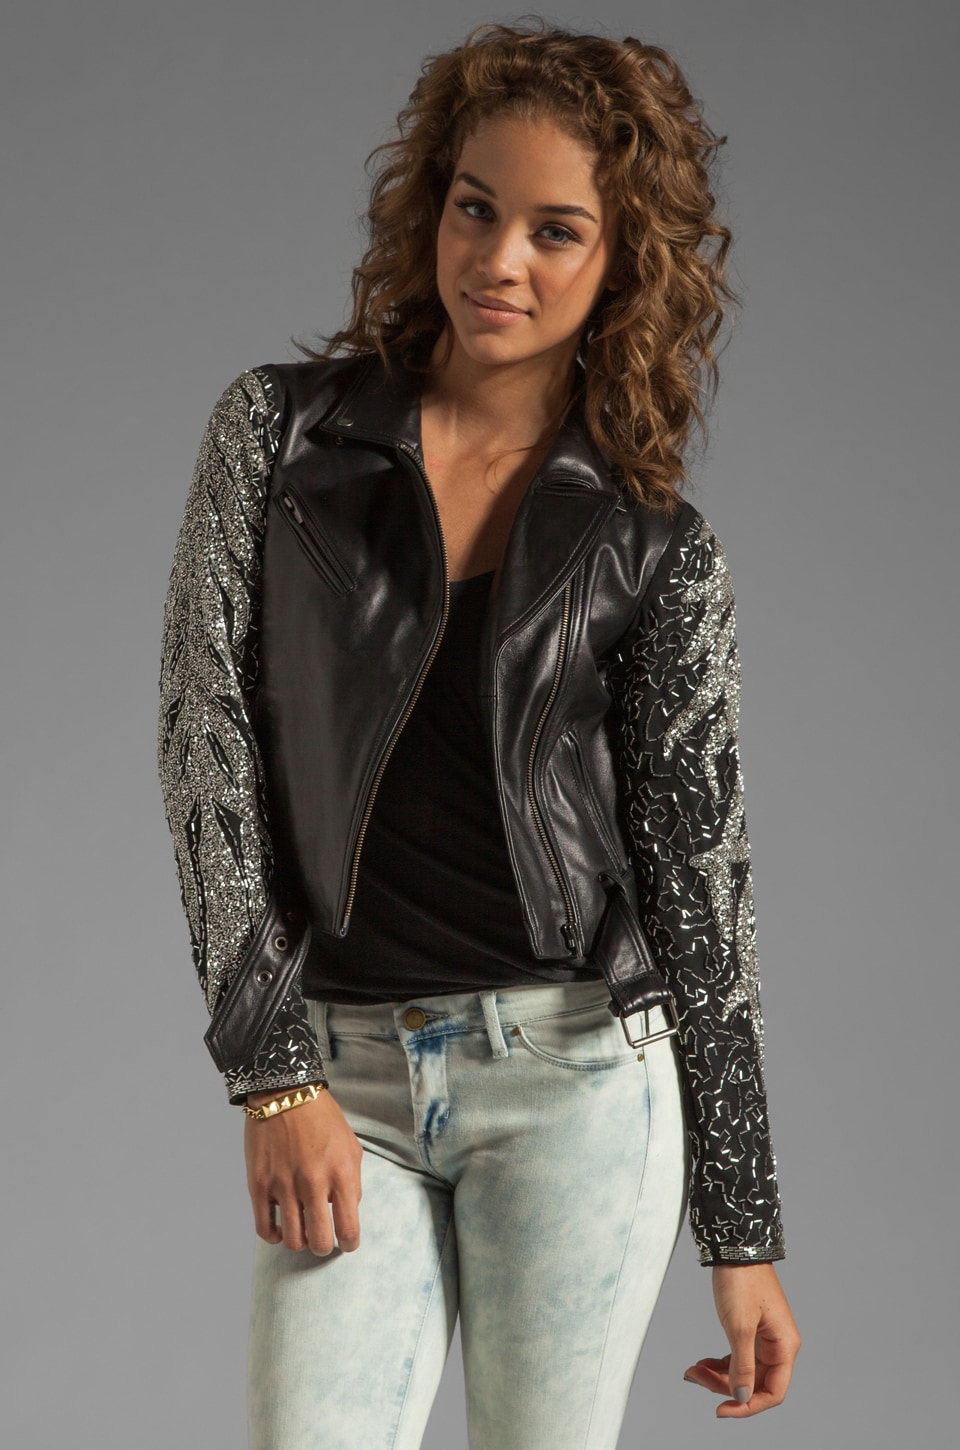 VEDA Aquarius Leather Embellished Jacket in Black/Silver